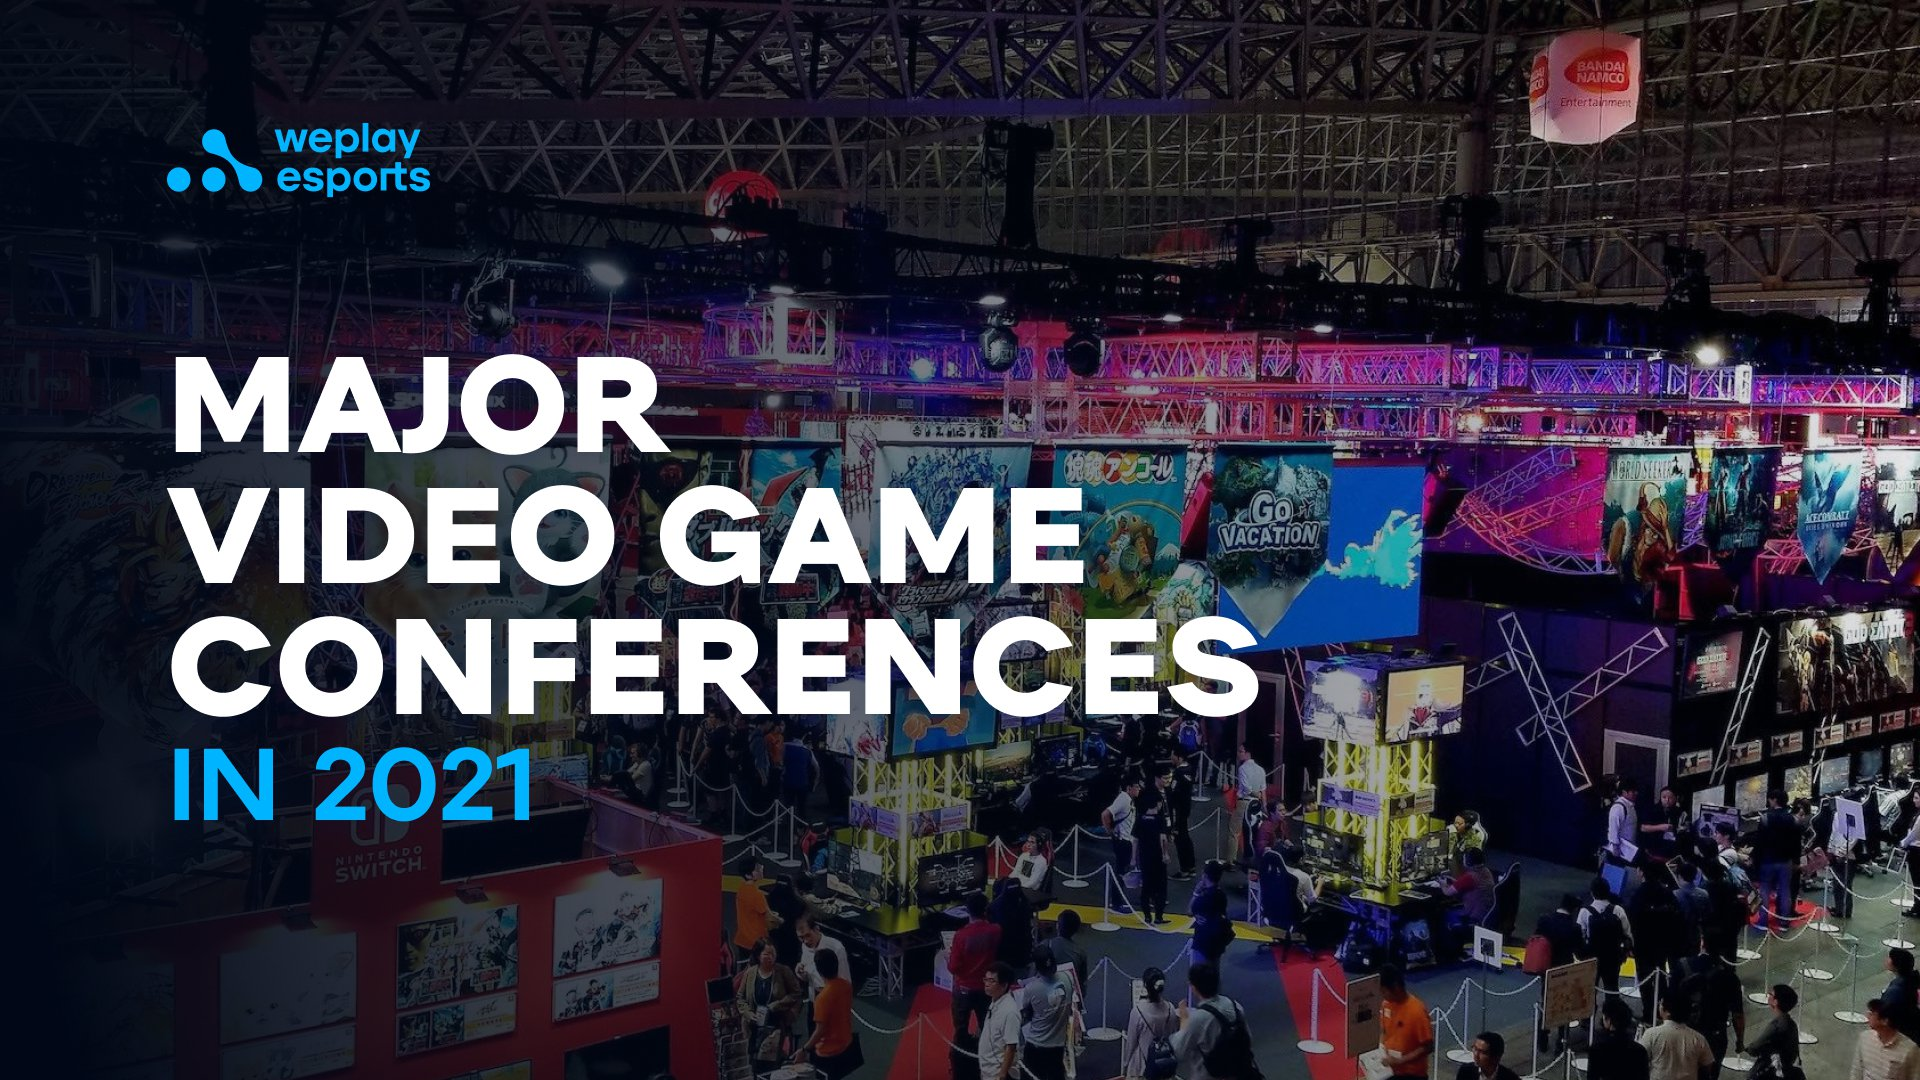 Major Video Game Conferences in 2021